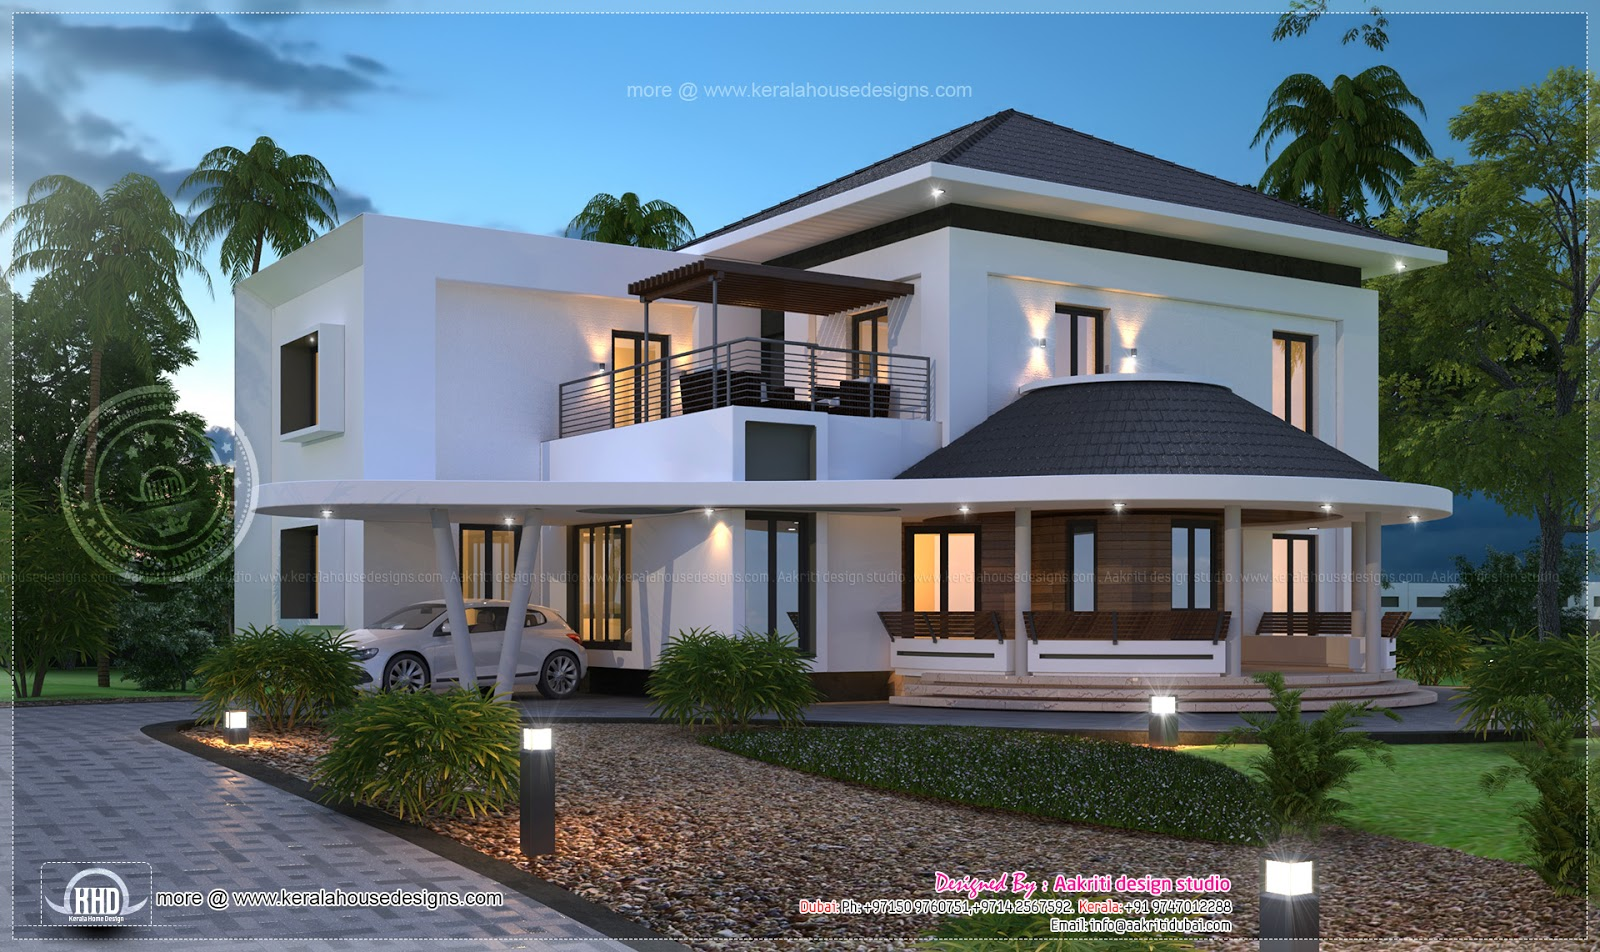 Beautiful 3200 sq ft modern villa exterior home kerala plans Indian villa floor plans